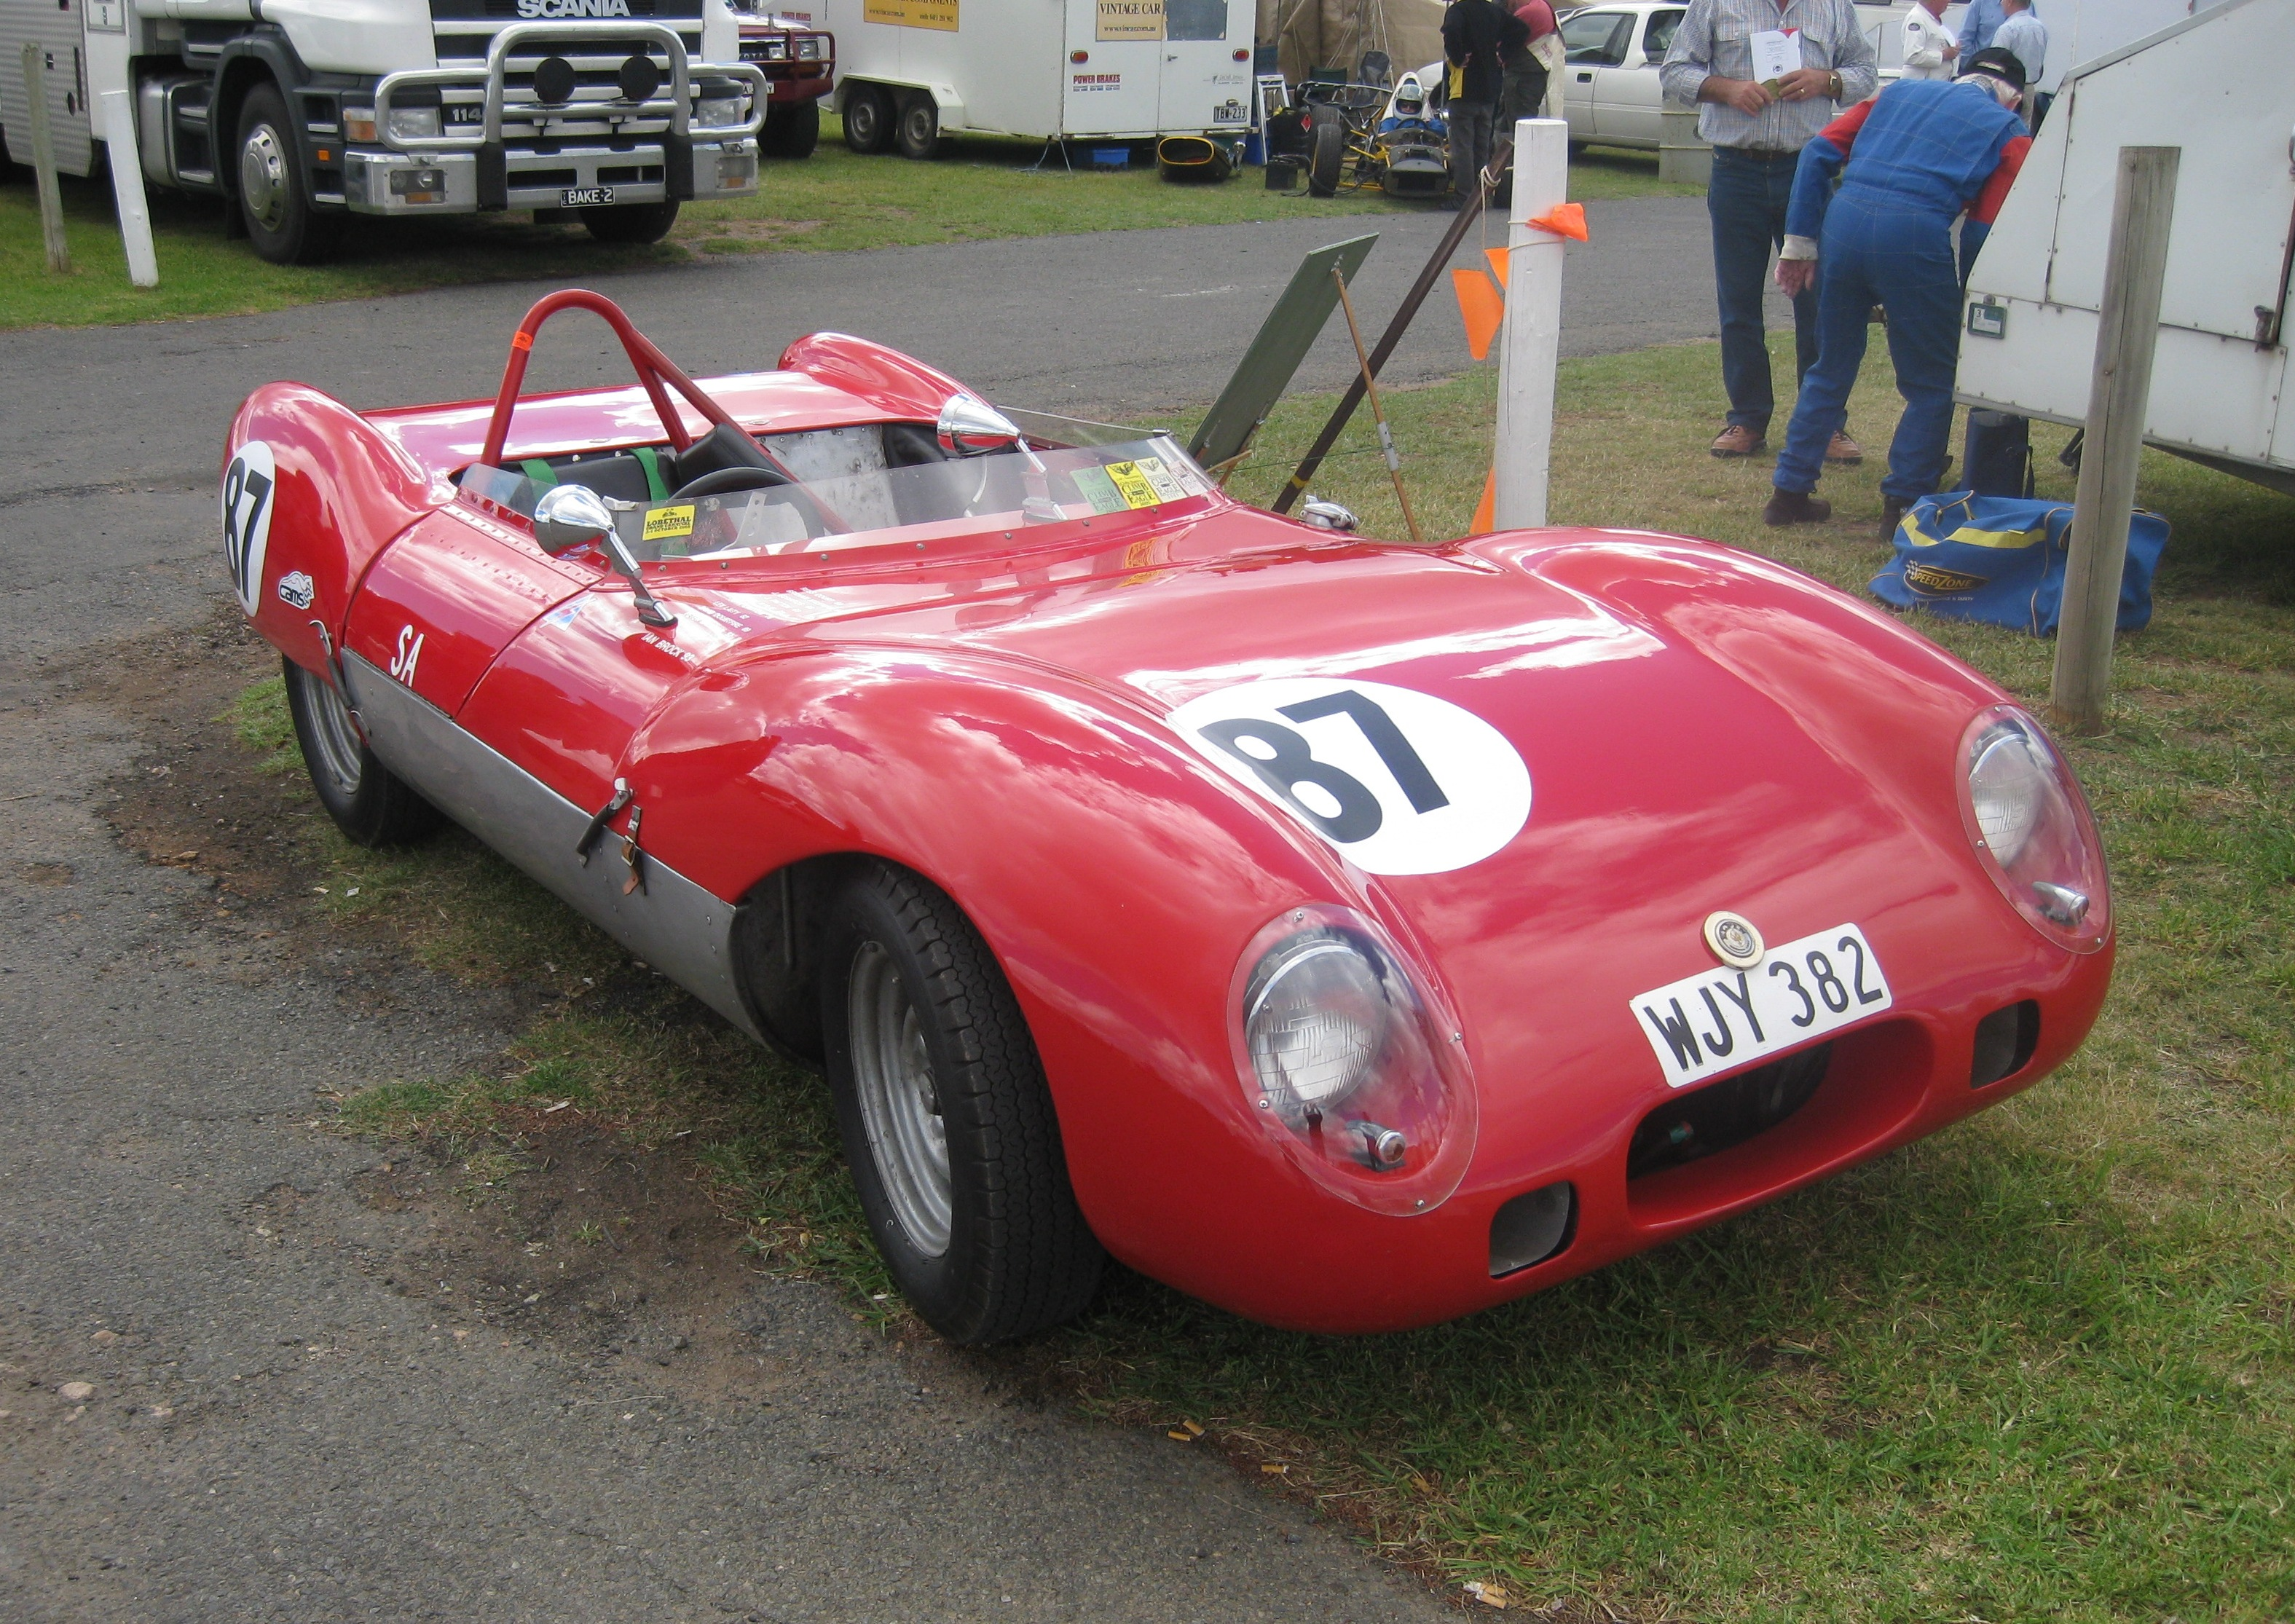 Elfin Sports Cars Wikiwand - Drb sports cars queensland